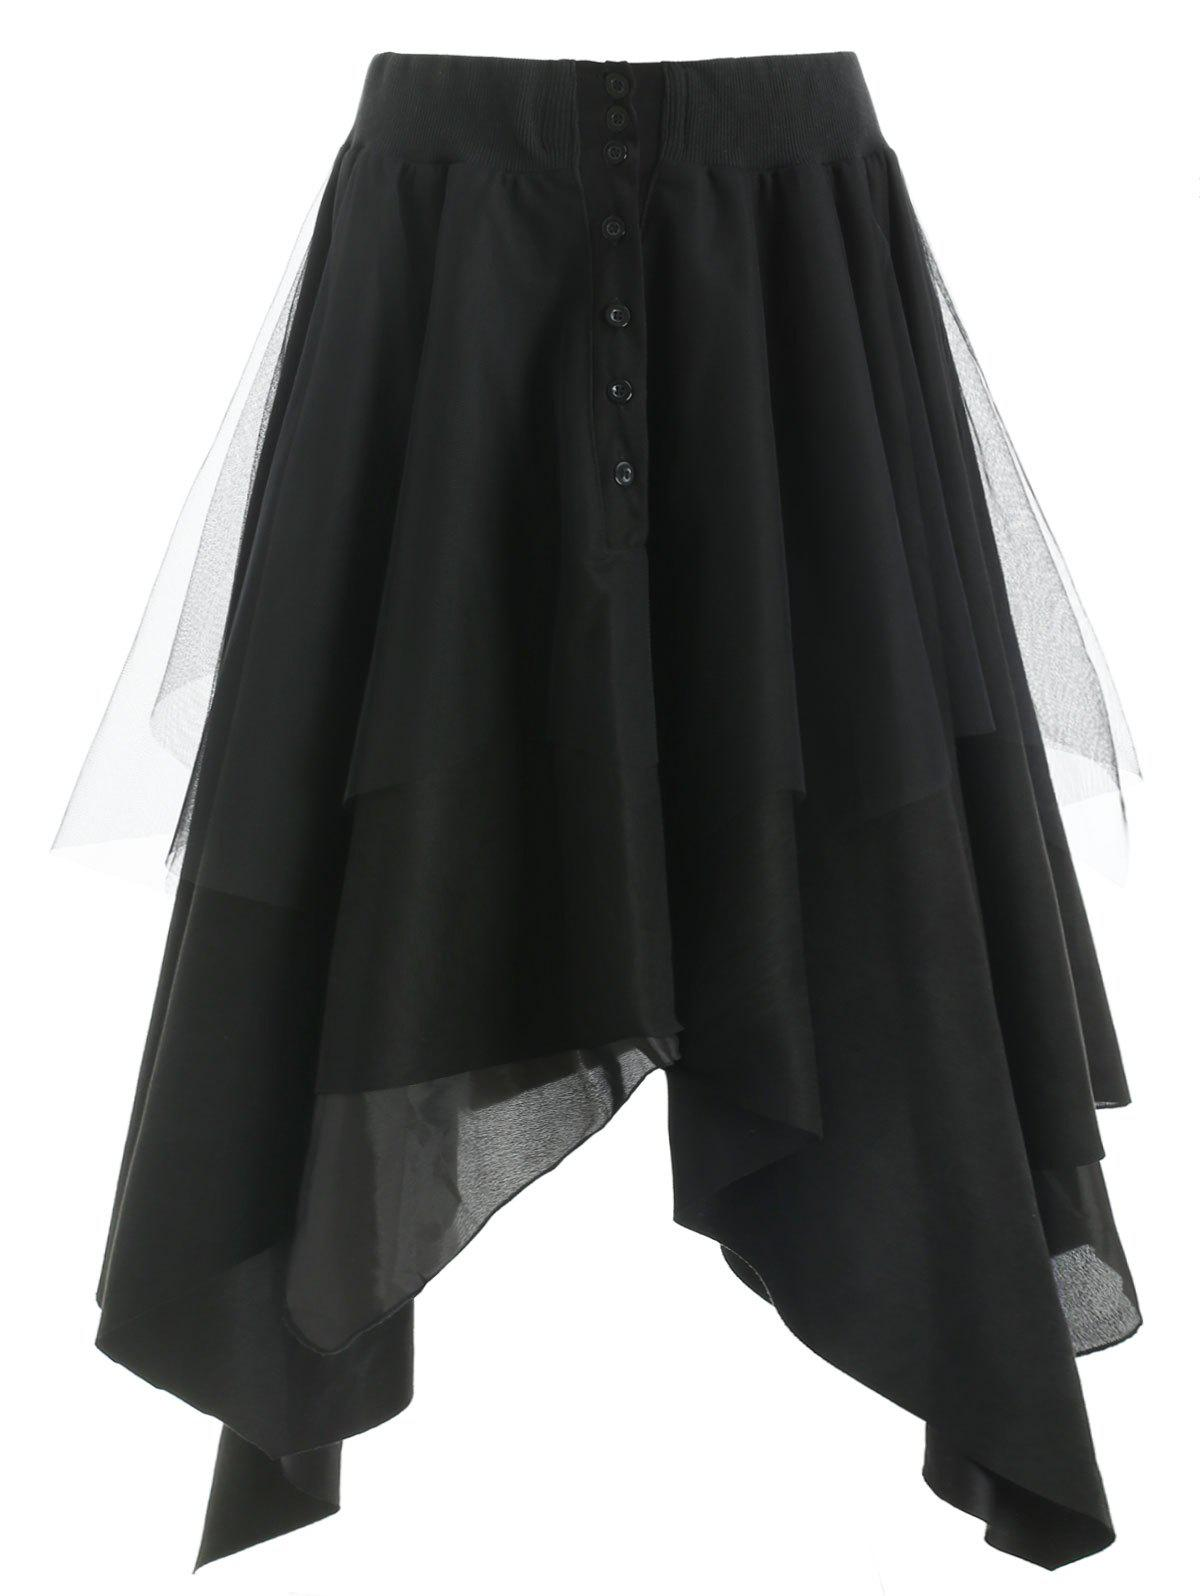 Mesh Panel Faux Suede Long Handkerchief Skirt - BLACK XL